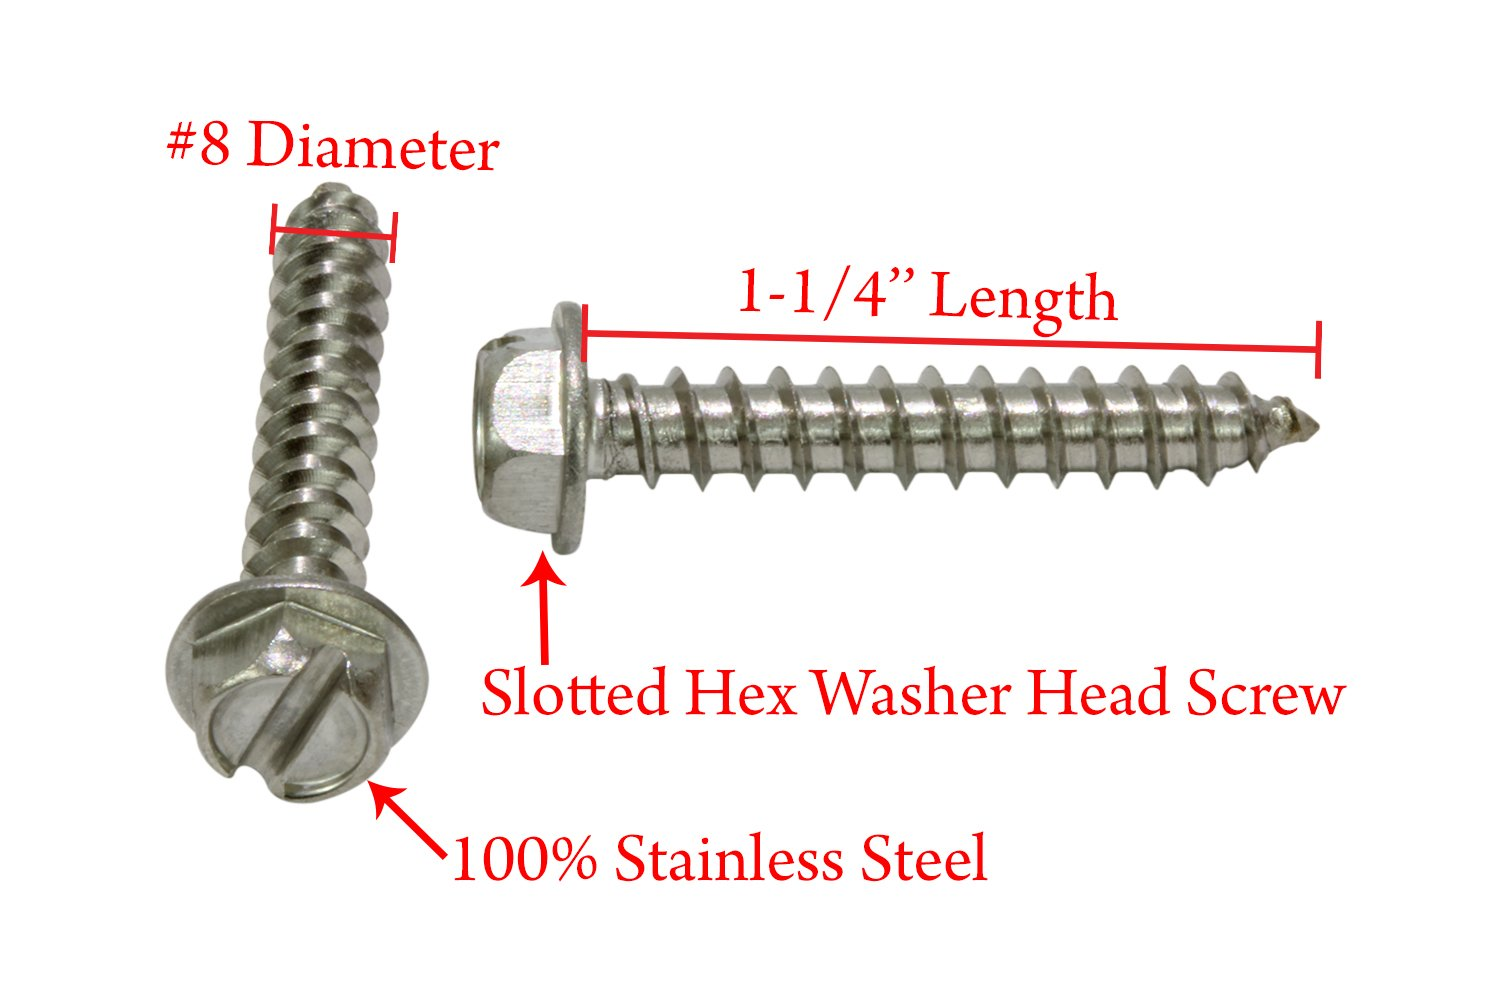 18-8 Stainless Steel Screw by Bolt Dropper 25 pc #12 X 2 Stainless Slotted Hex Washer Head Screw, 304